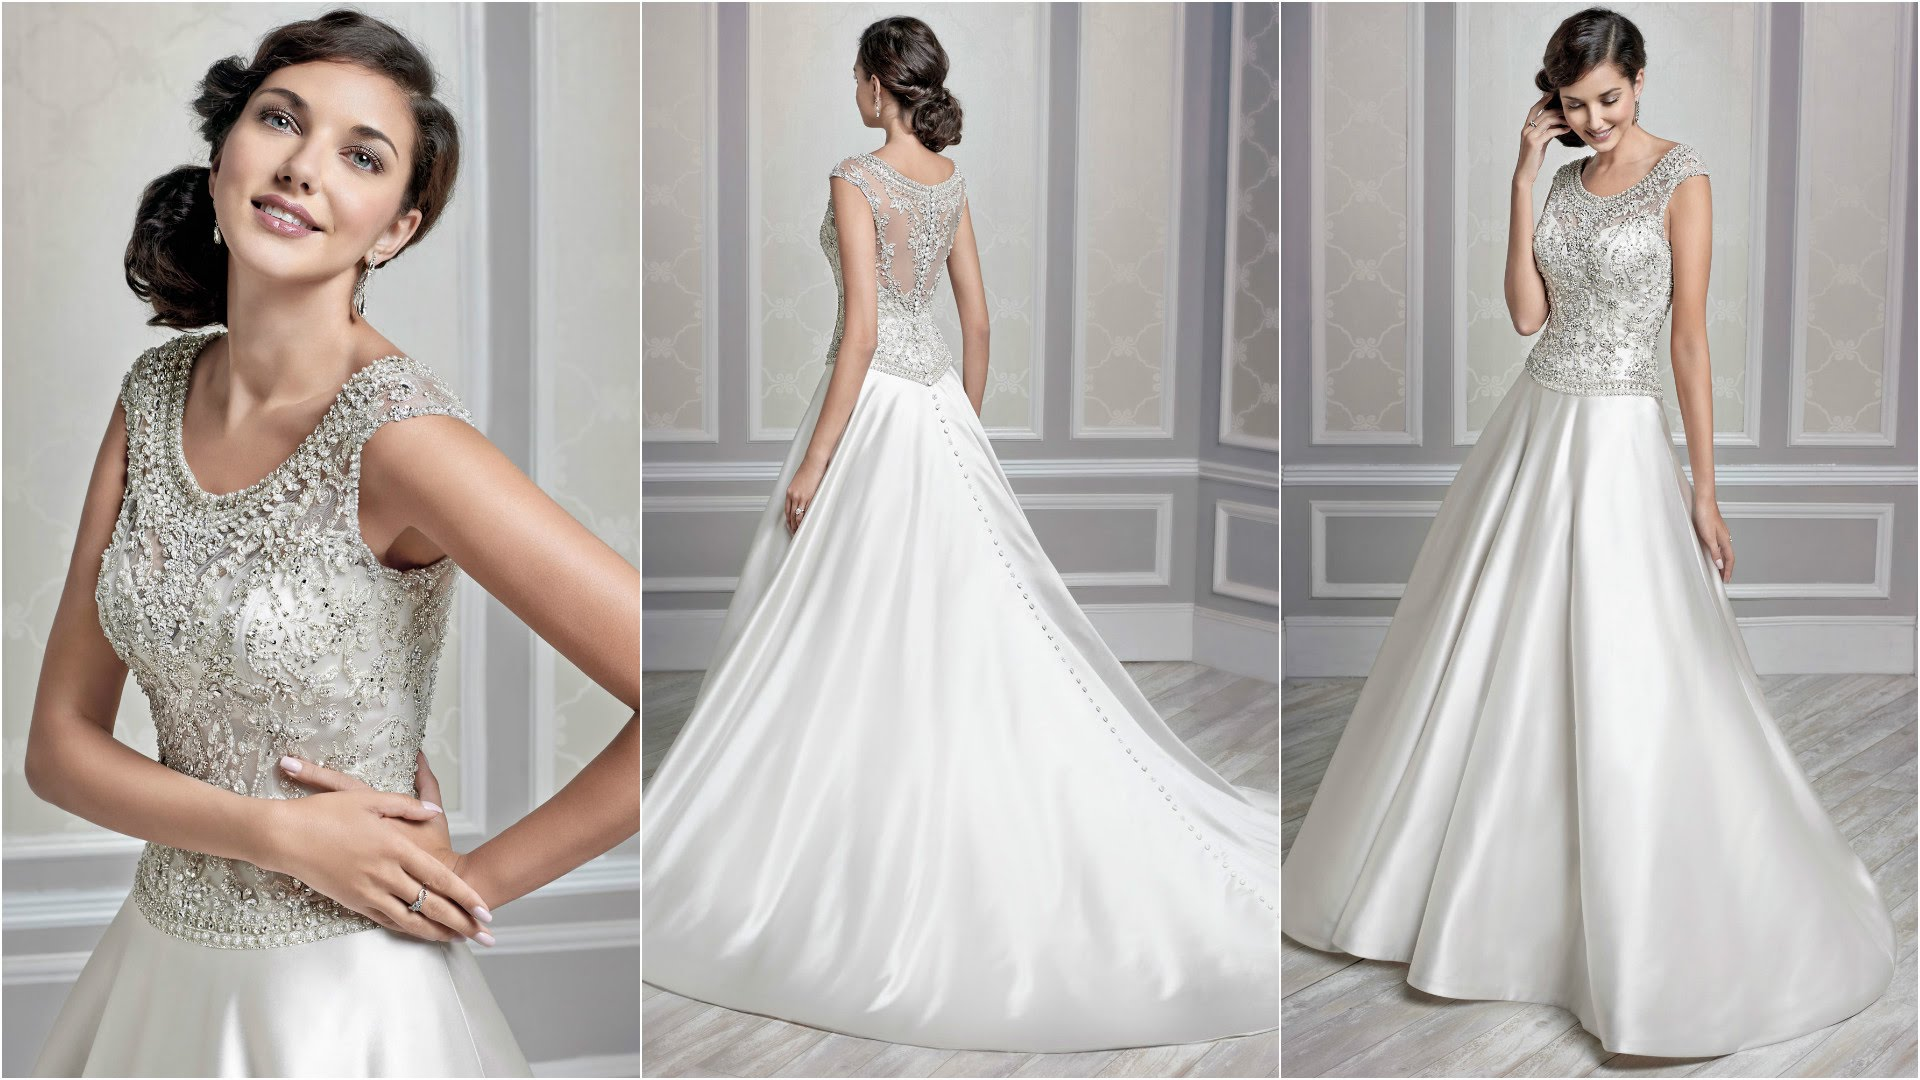 Get Elegantly Outstanding For Your Wedding With A Beautiful Silver Dress